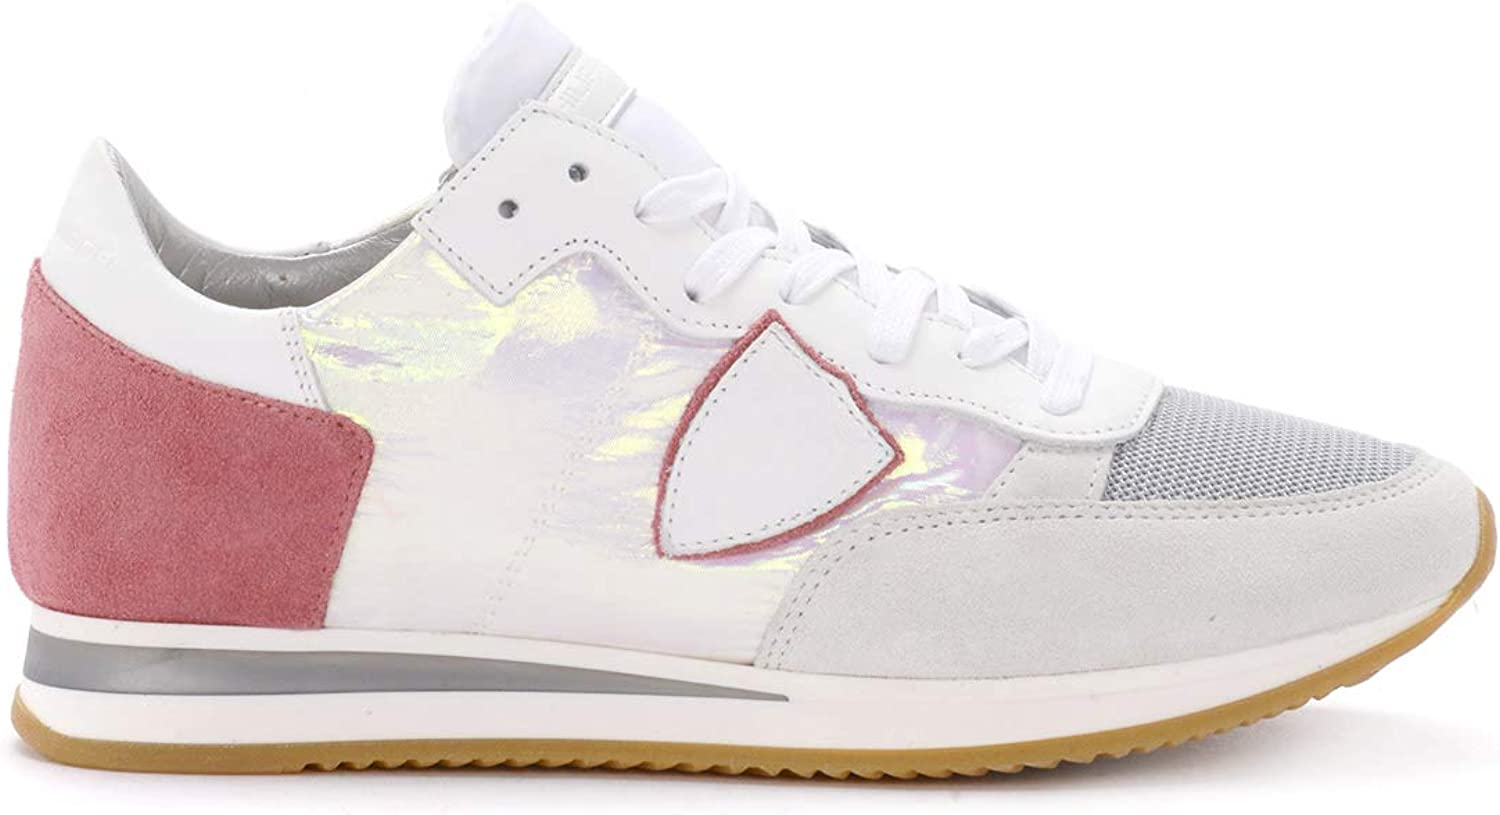 PHILIPPE MODEL Woman's Tropez Iridescent Fabric and Suede Sneaker